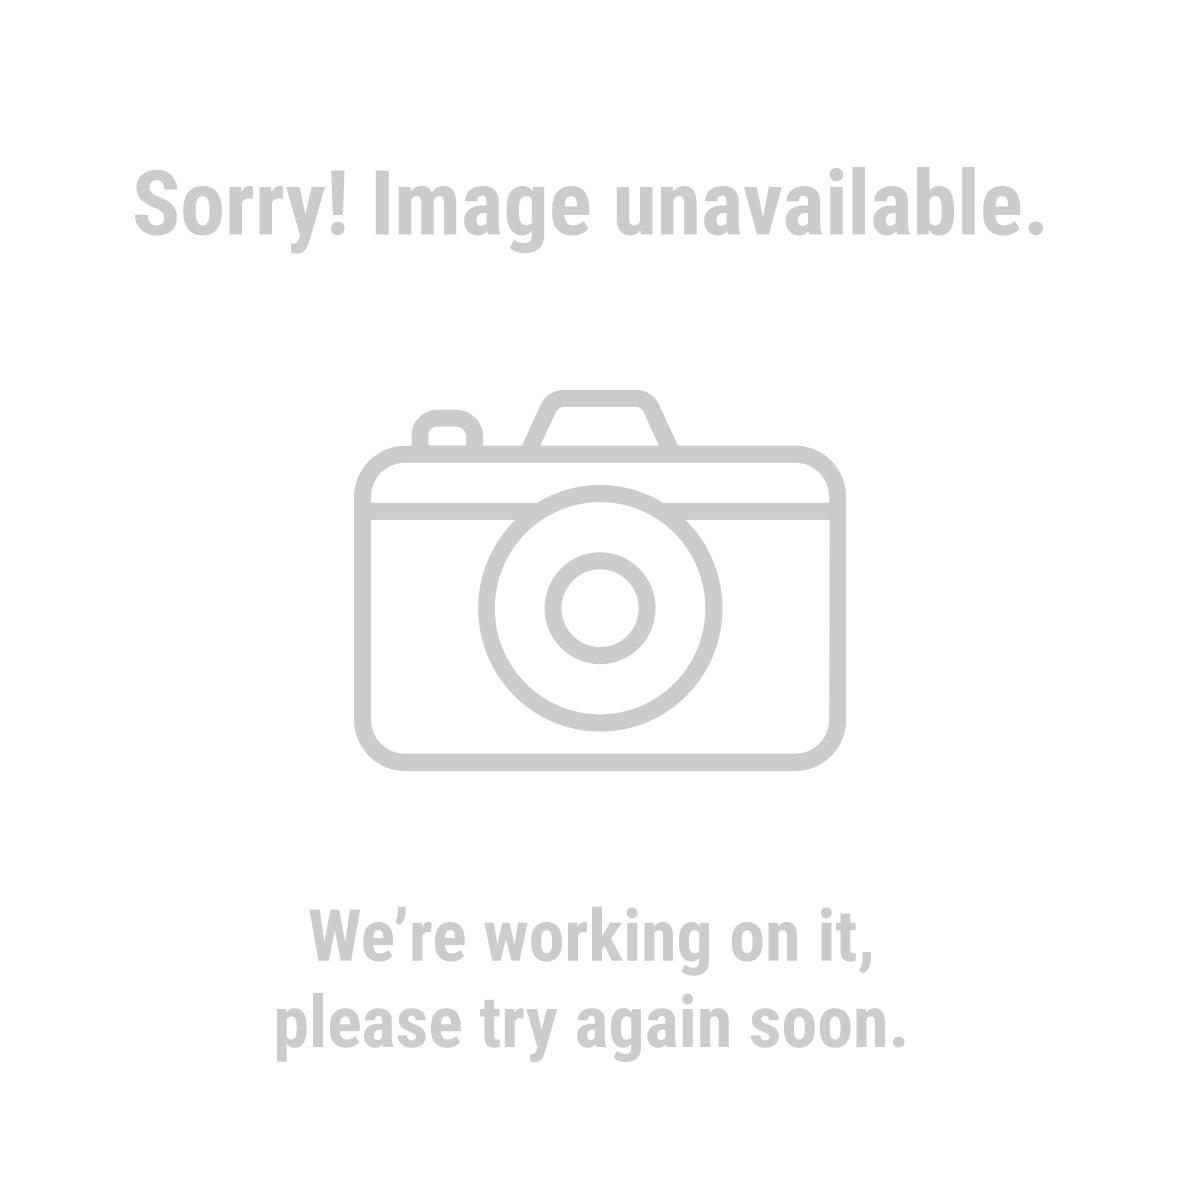 Pittsburgh 35439 3 Piece High Voltage Electrician's Pliers